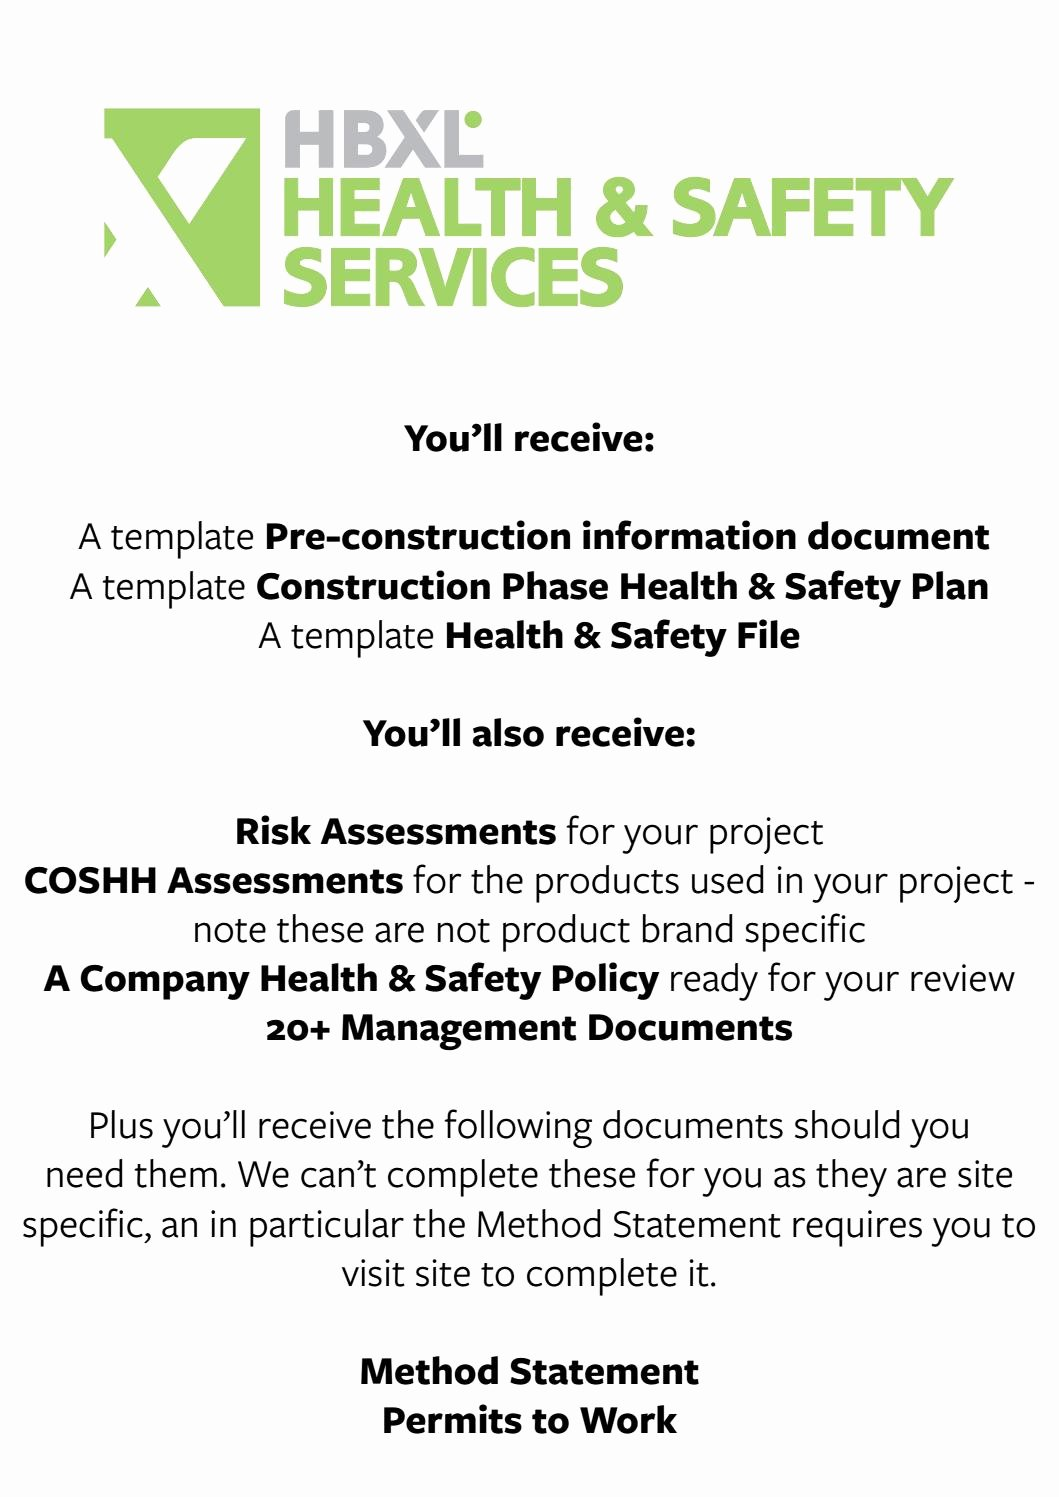 Site Specific Safety Plan Template Awesome Health & Safety Pack Sample by Hbxl Estimating Service issuu